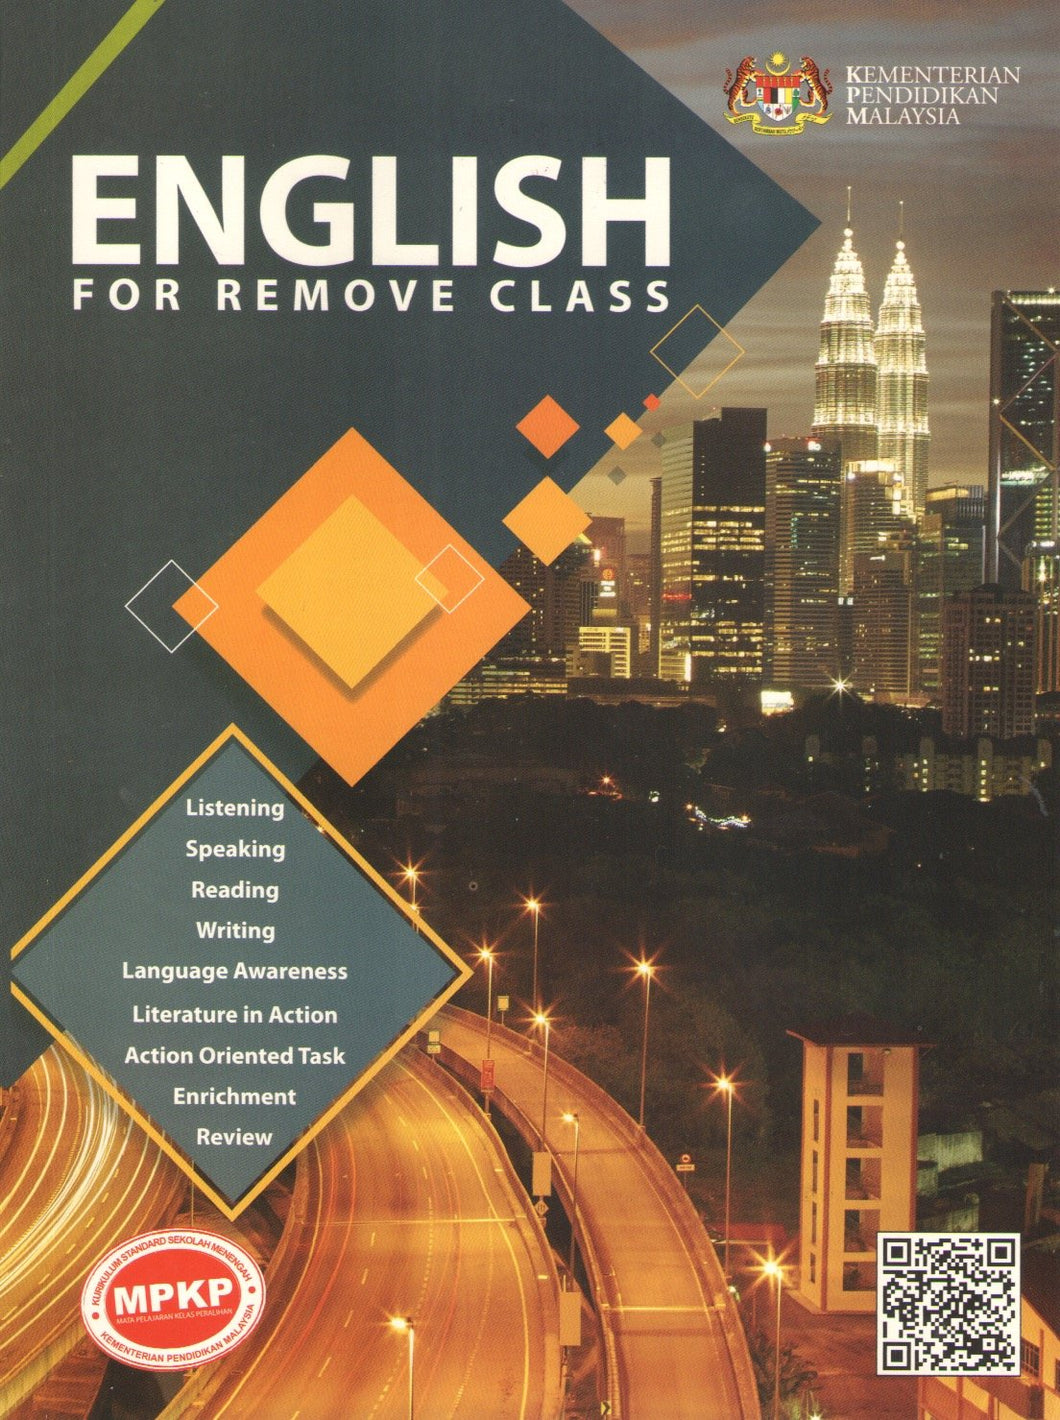 ArasMega: Buku Teks English Kelas Peralihan / Remove Class Textbook